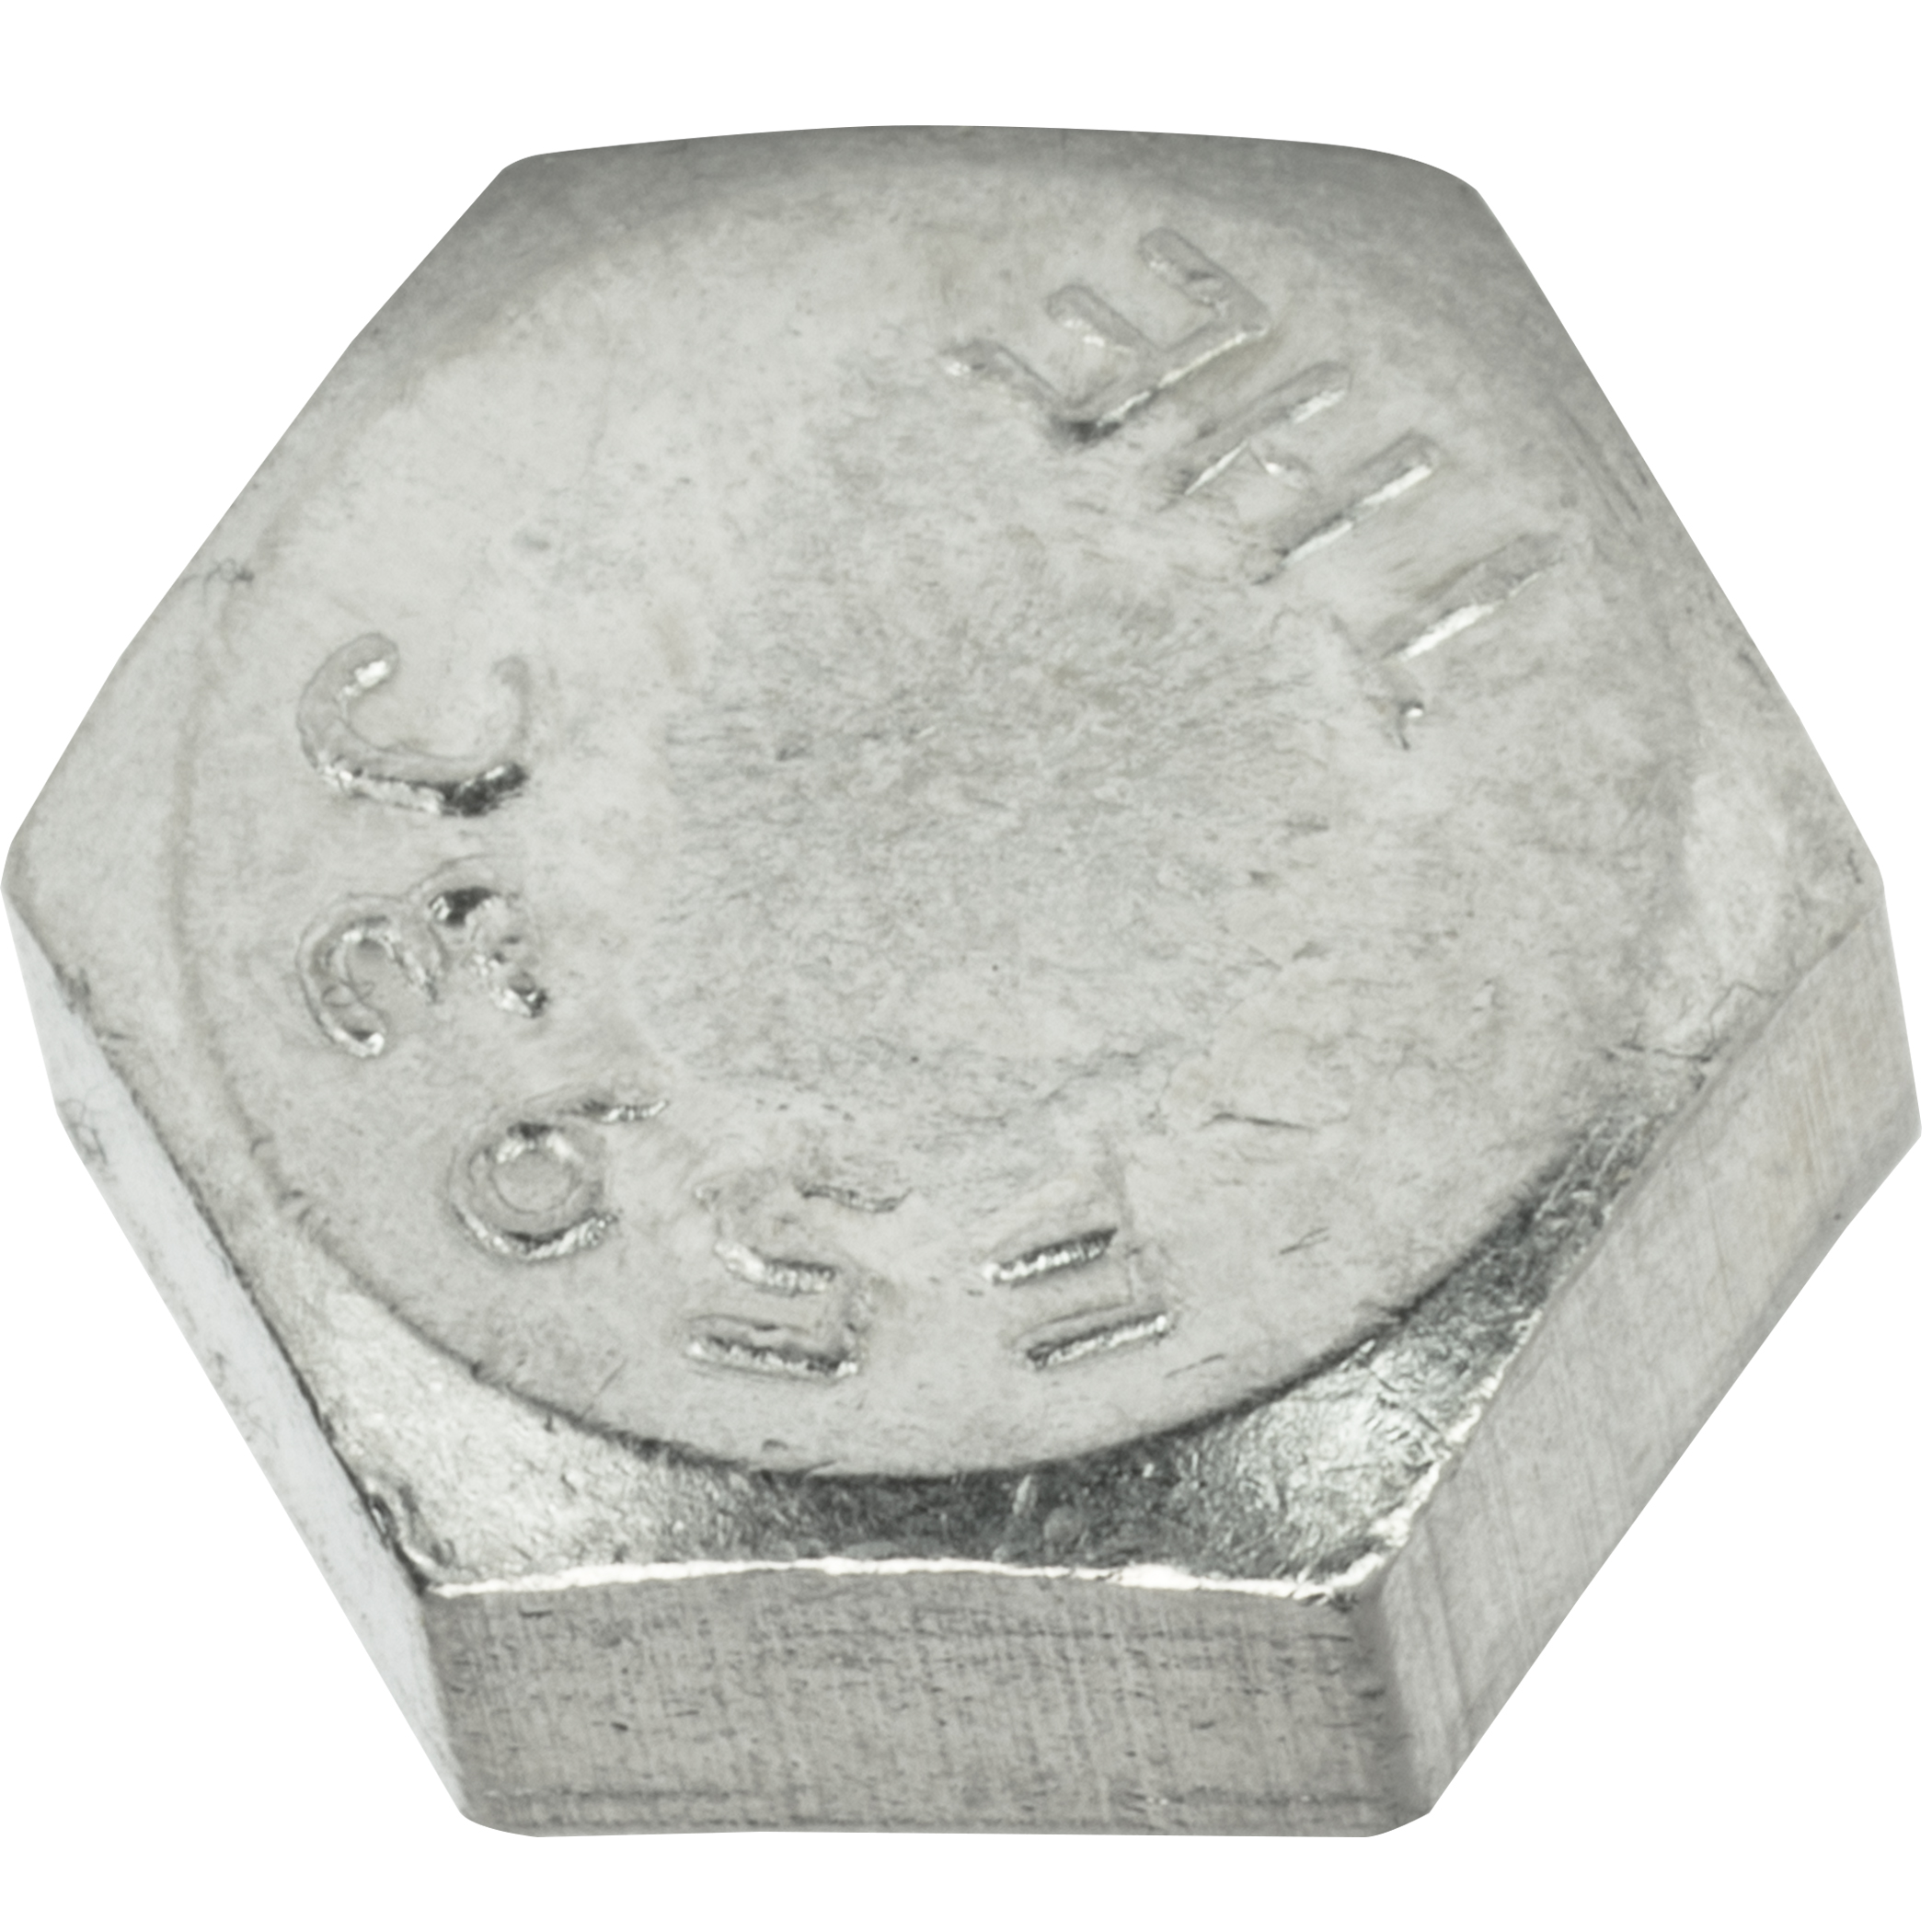 1-2-13-Hex-Bolts-Stainless-Steel-Cap-Screws-Partially-Threaded-All-Sizes-Listed thumbnail 11